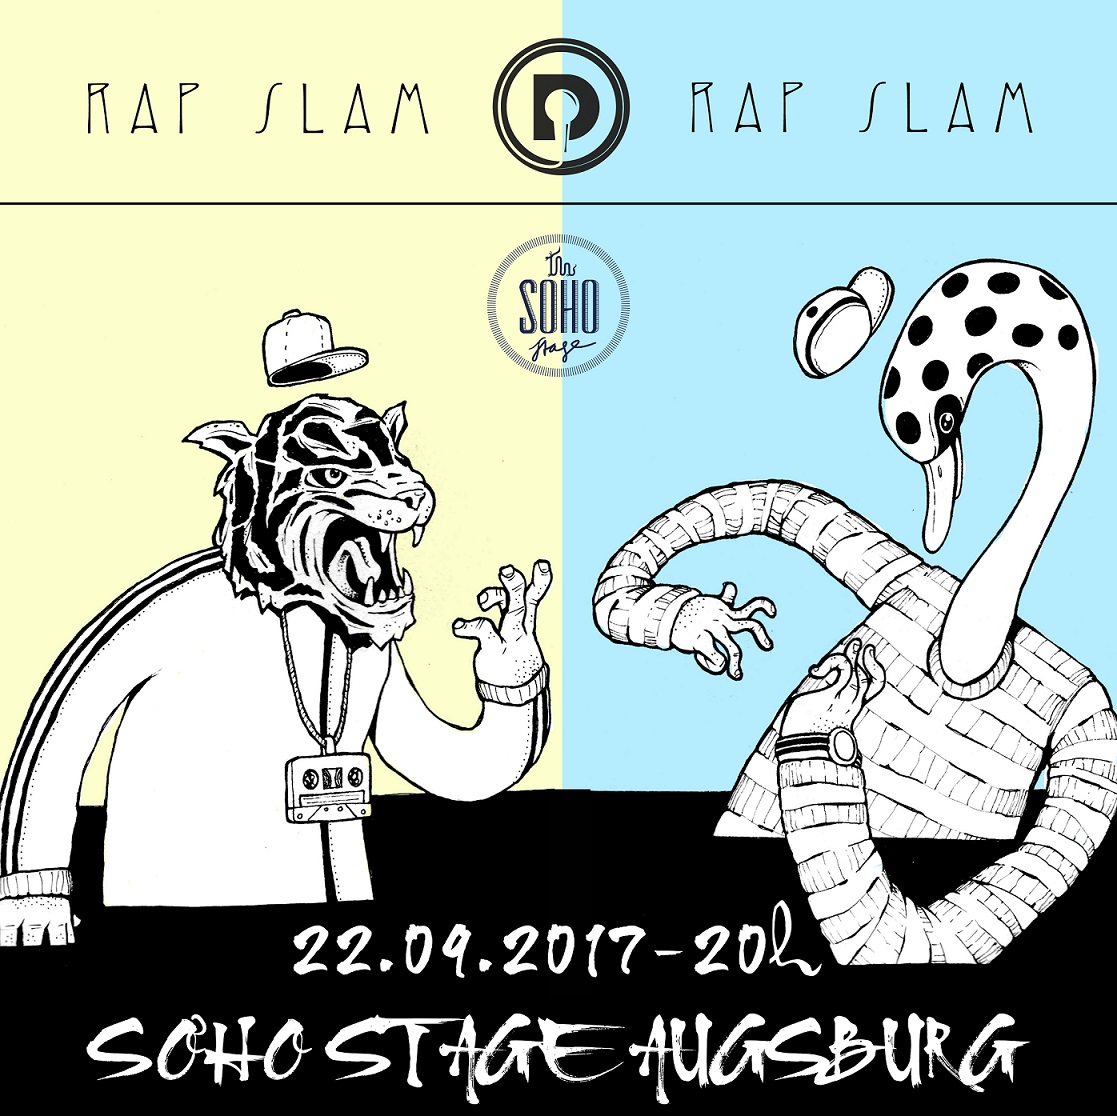 Soho Stage Daily Rap Slam Augsburg 2017